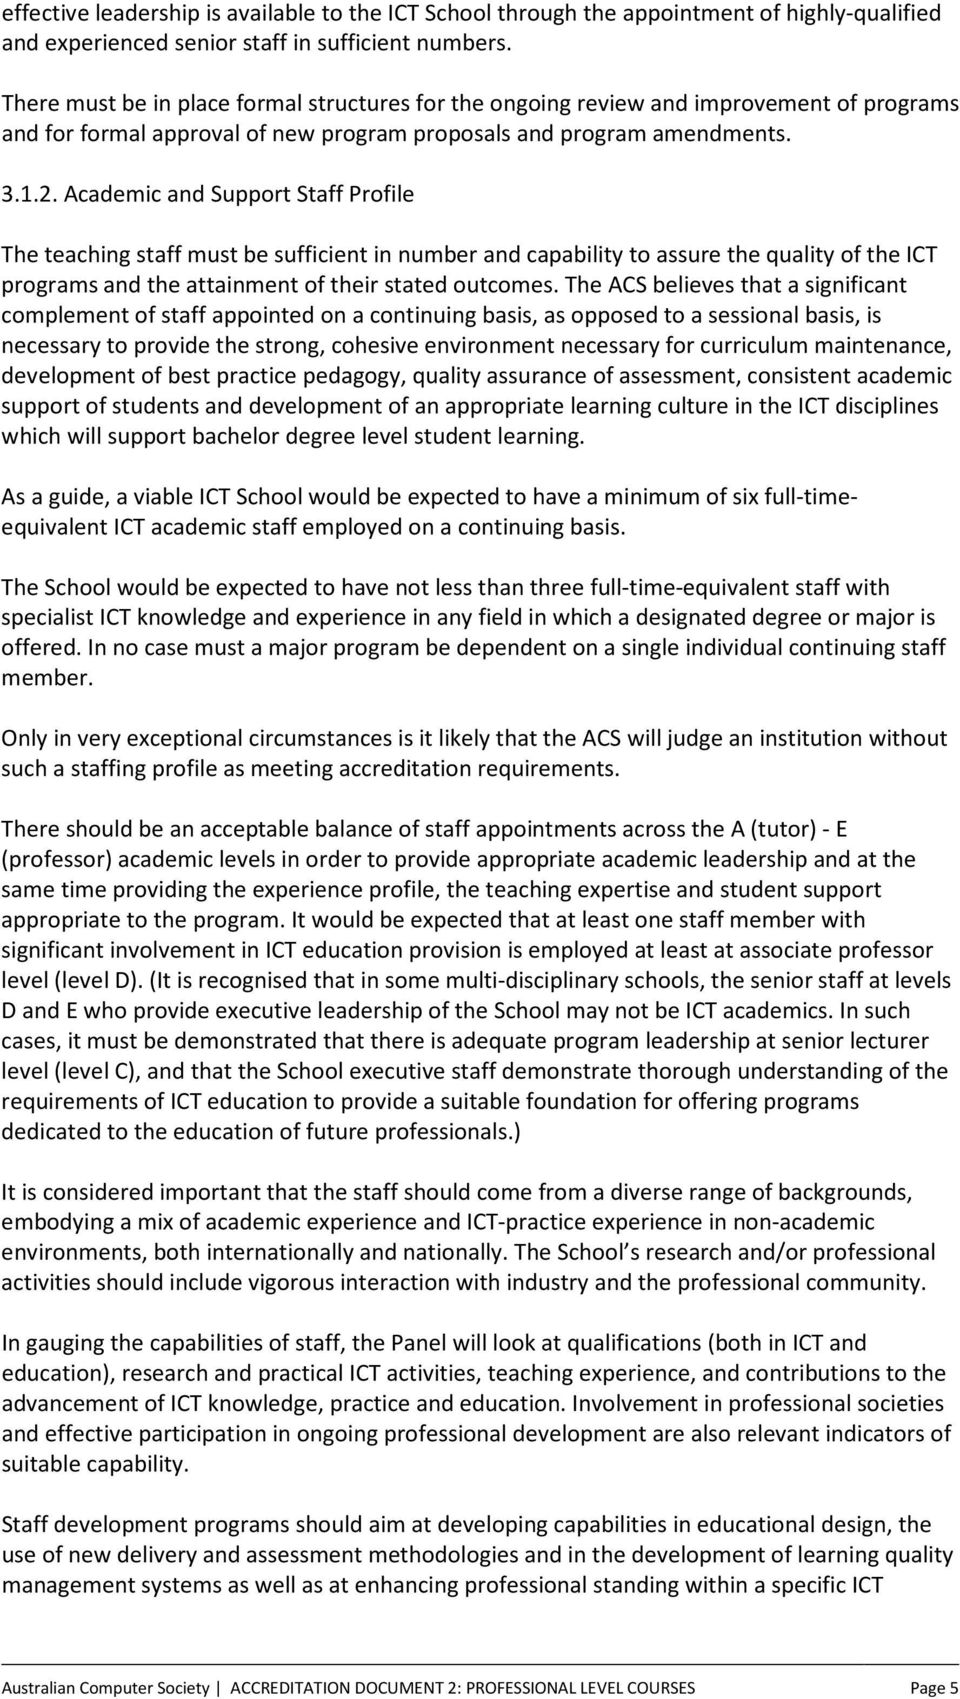 Academic and Support Staff Profile The teaching staff must be sufficient in number and capability to assure the quality of the ICT programs and the attainment of their stated outcomes.